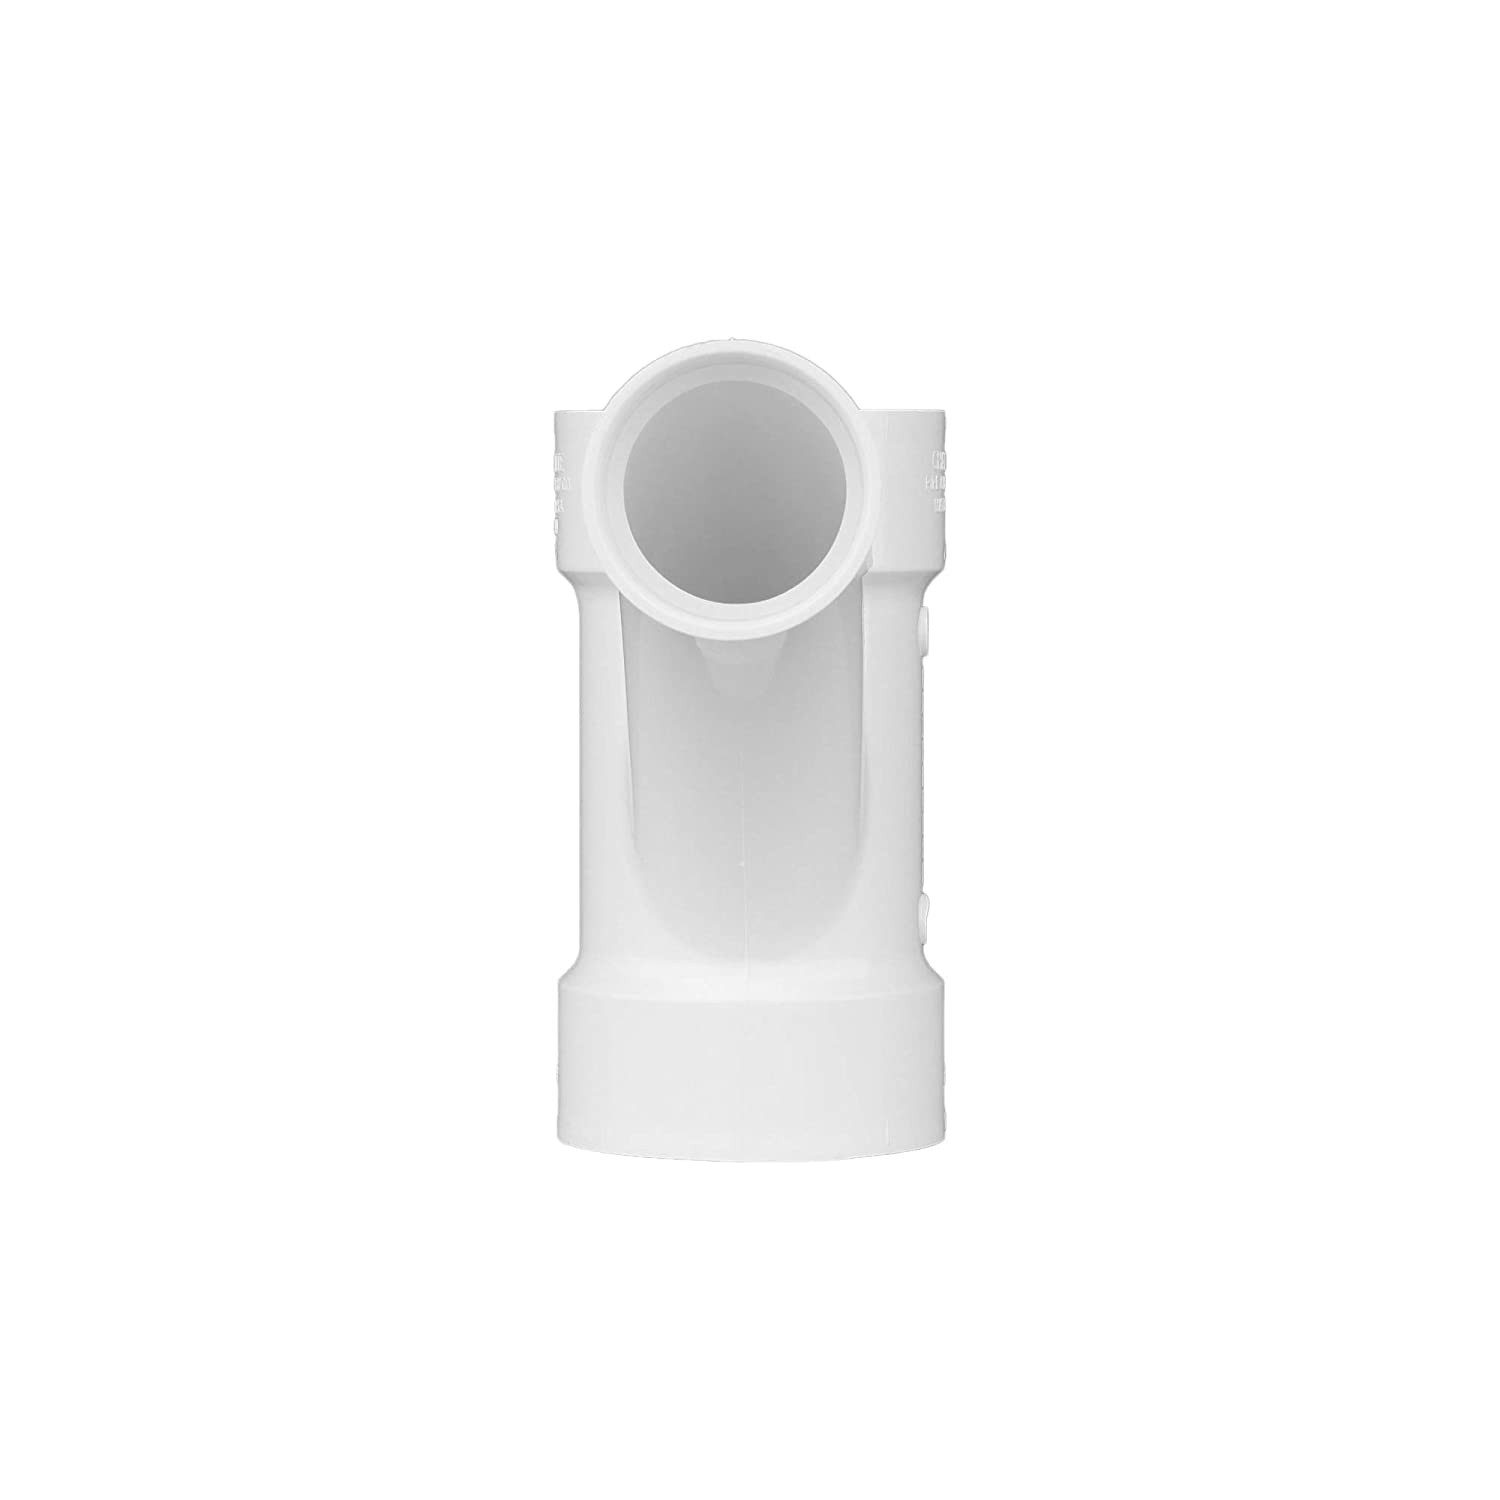 Durable and Easy to Install for Home or Industrial Use Drain, Waste and Vent Single Unit and 1//8 Bend 1 Piece Schedule 40 PVC DWV Charlotte Pipe 3 X 3 X 2 Comb Wye Pipe Fitting